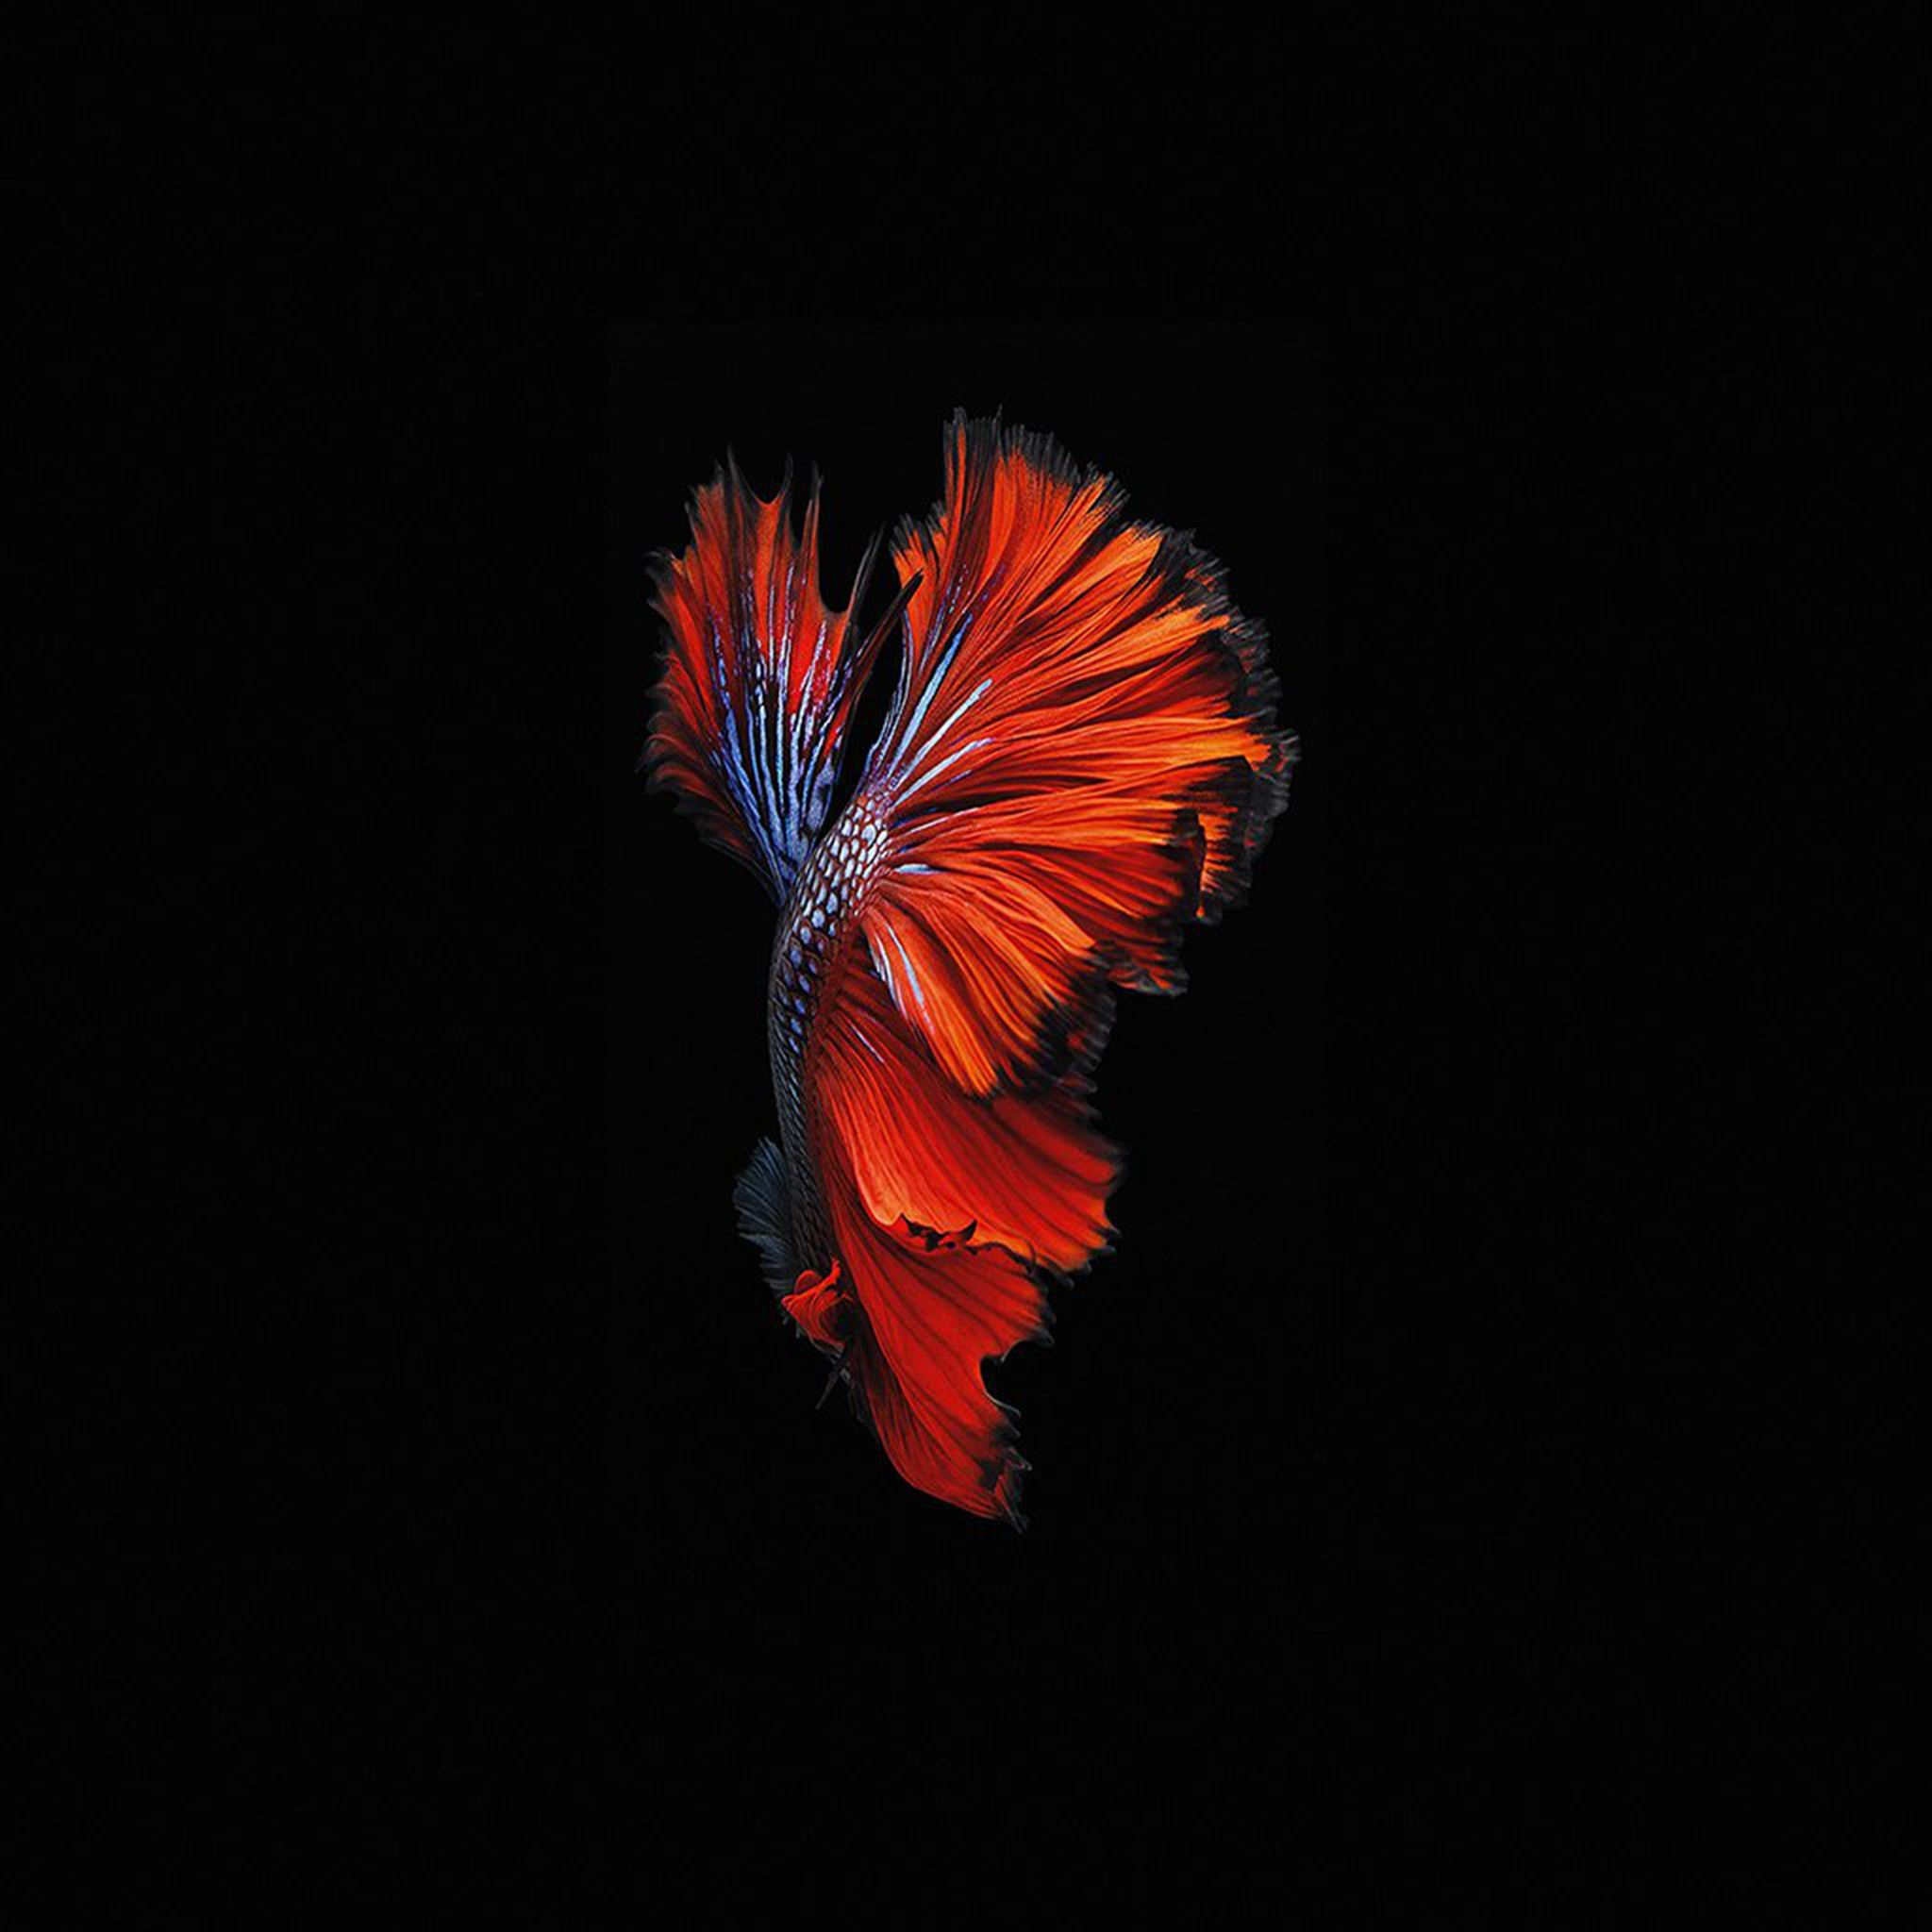 Old Iphone Wallpapers: Apple Ios9 Fish Live Background Dark Red IPad Air